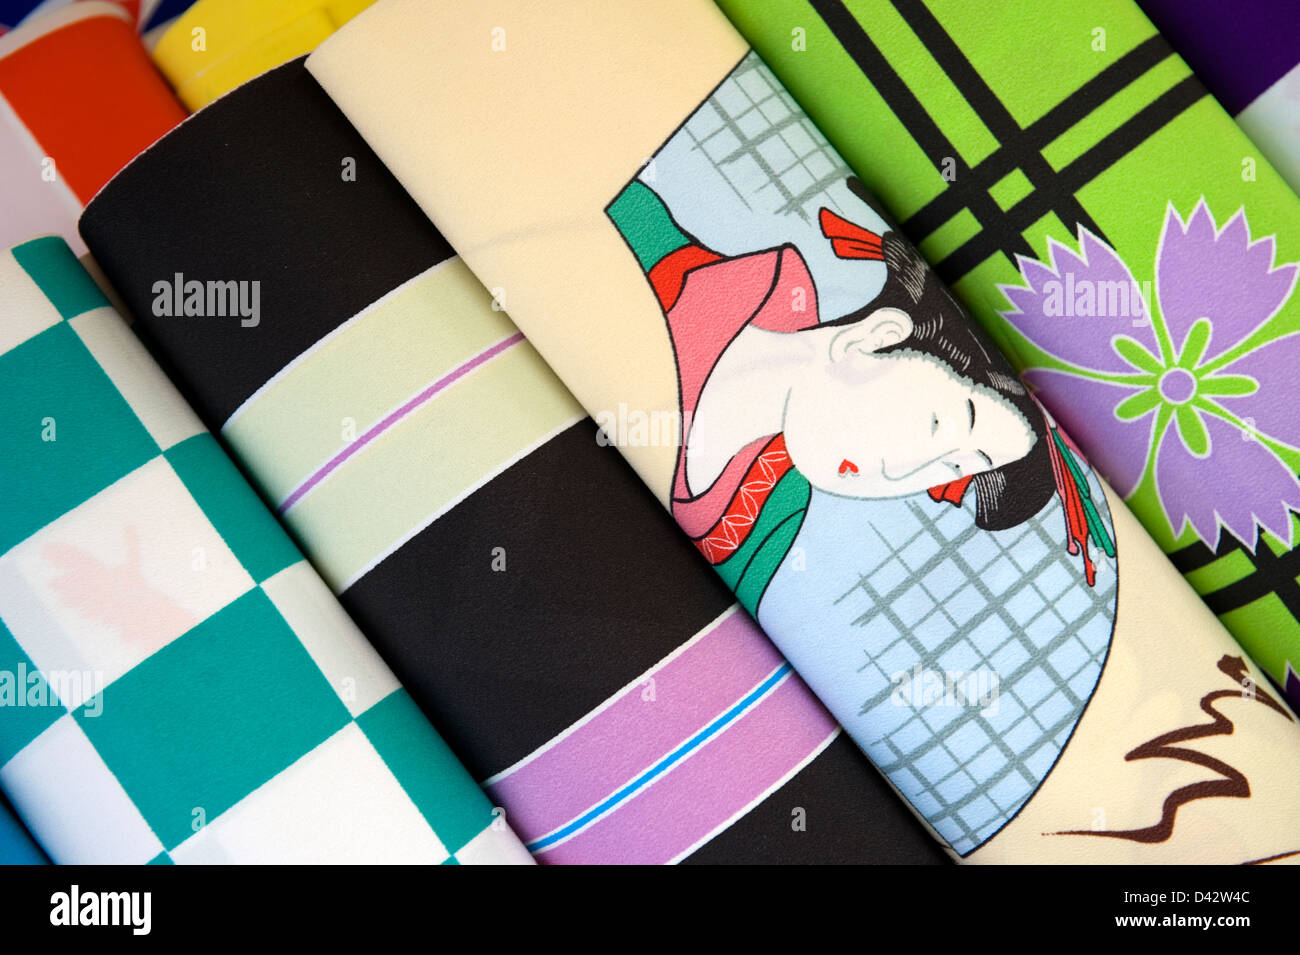 Bolts of colorful Japanese fabric, one with a Ukiyo-e style print, for sale at a retail shop in Tokyo, Japan. - Stock Image